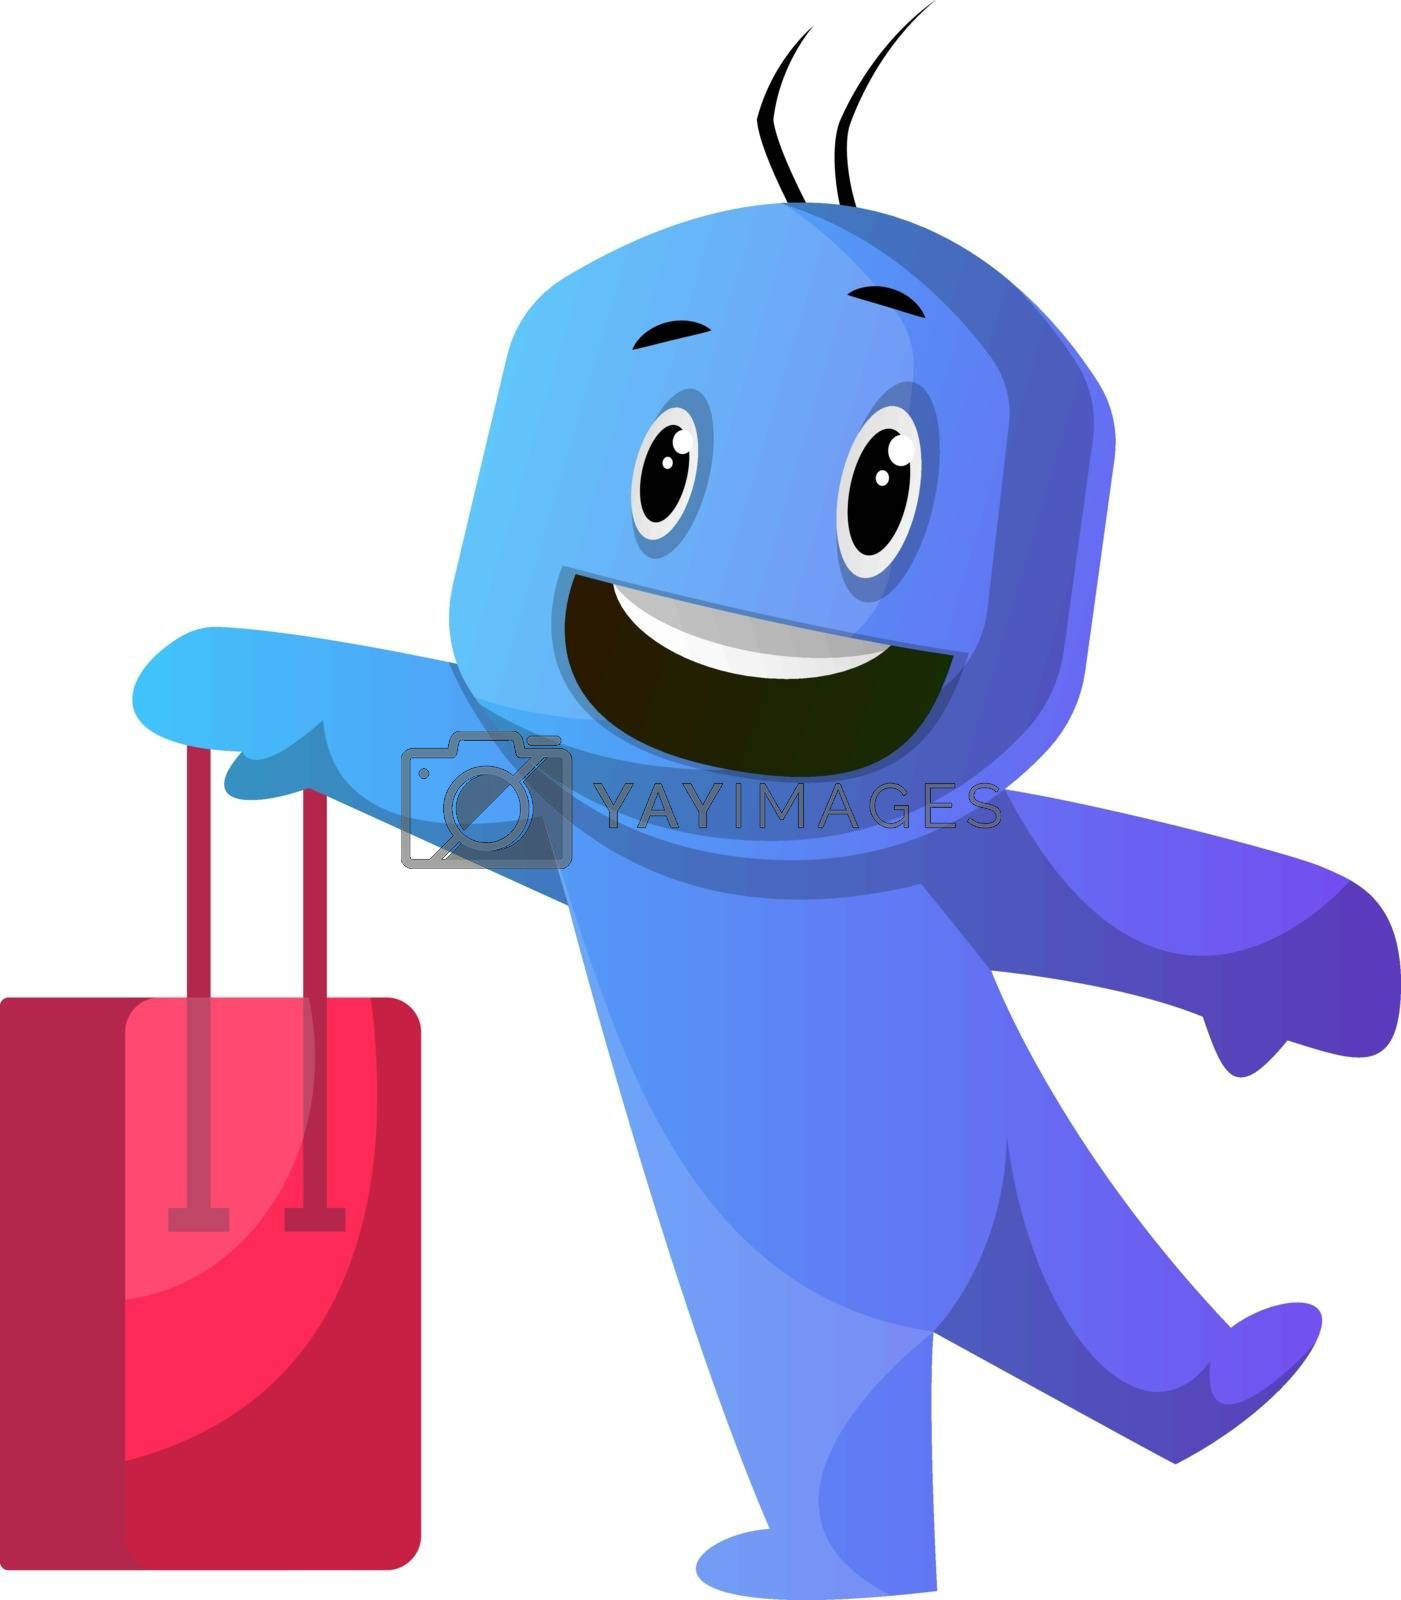 Royalty free image of Blue cartoon caracter holding red shoping bag illustration vecto by Morphart